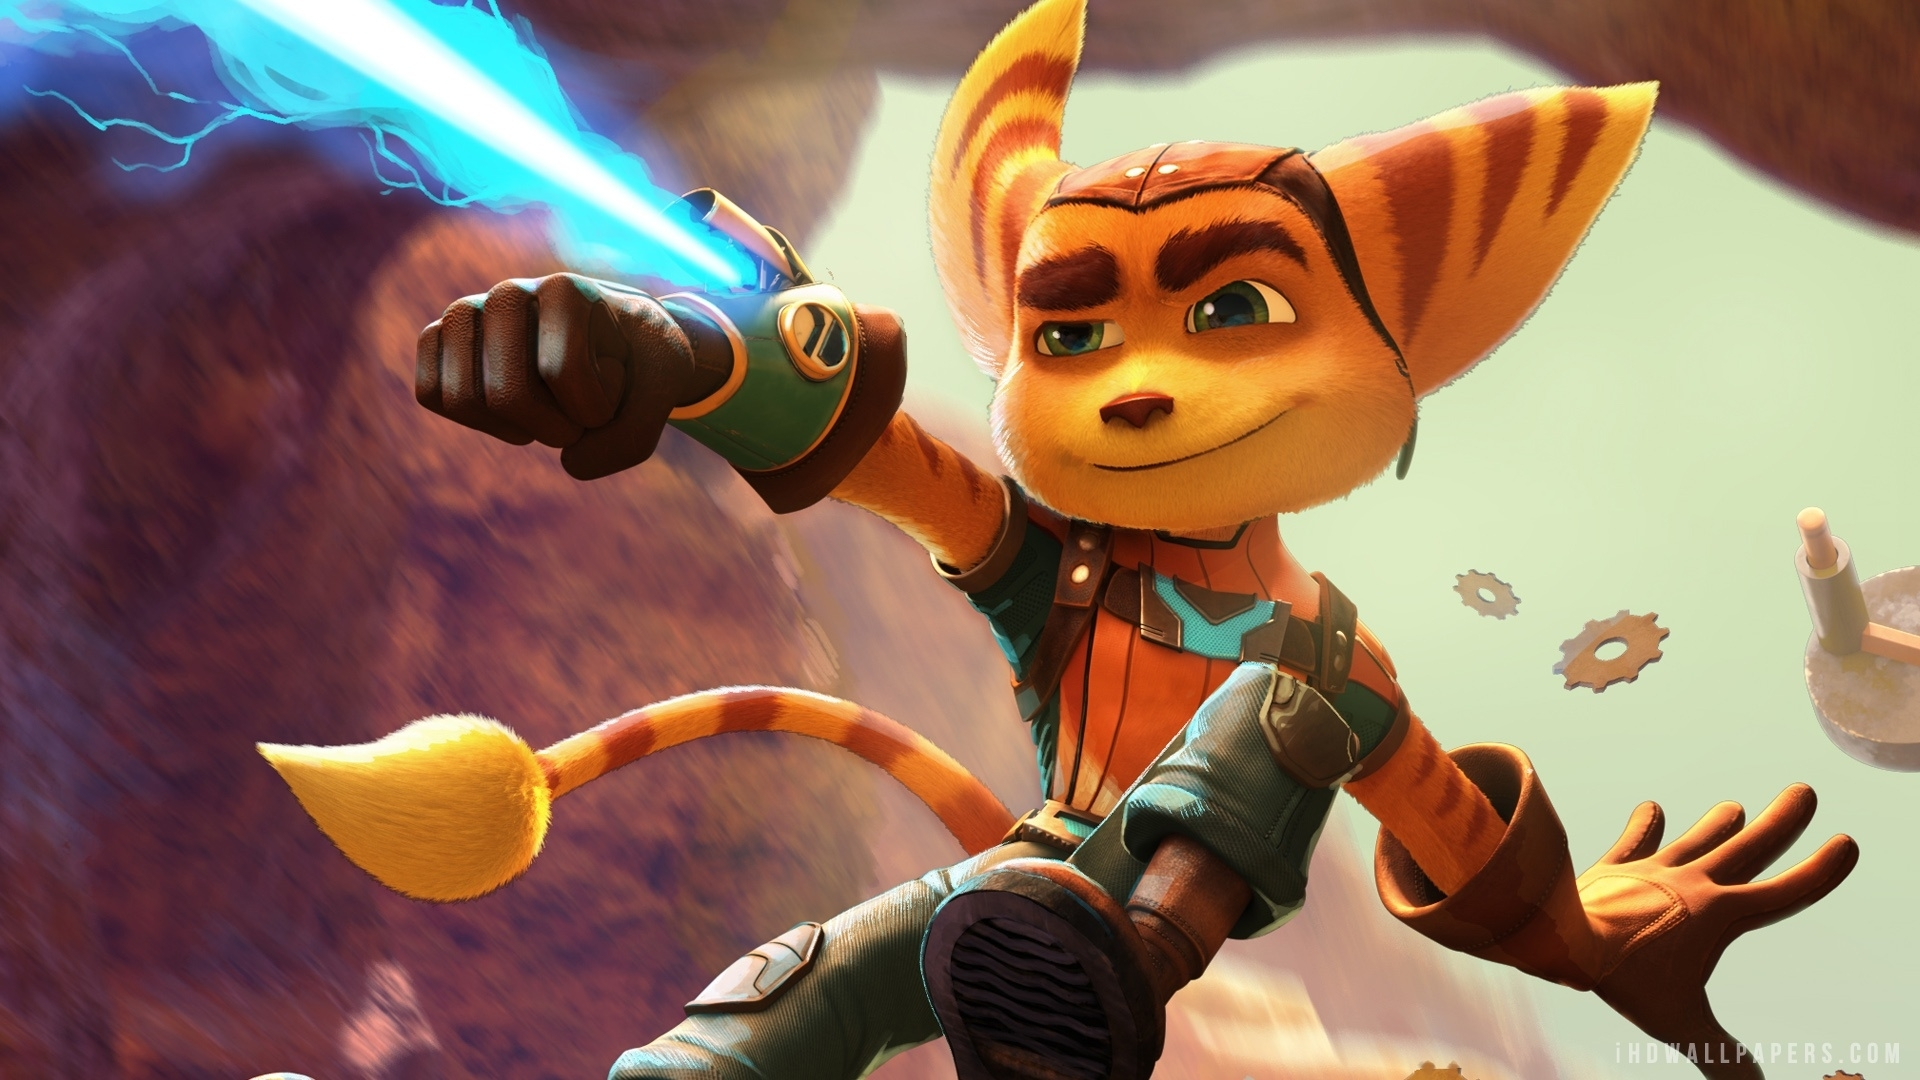 ratchet clank movie 2015 hd wallpaper - ihd wallpapers   ratchet and